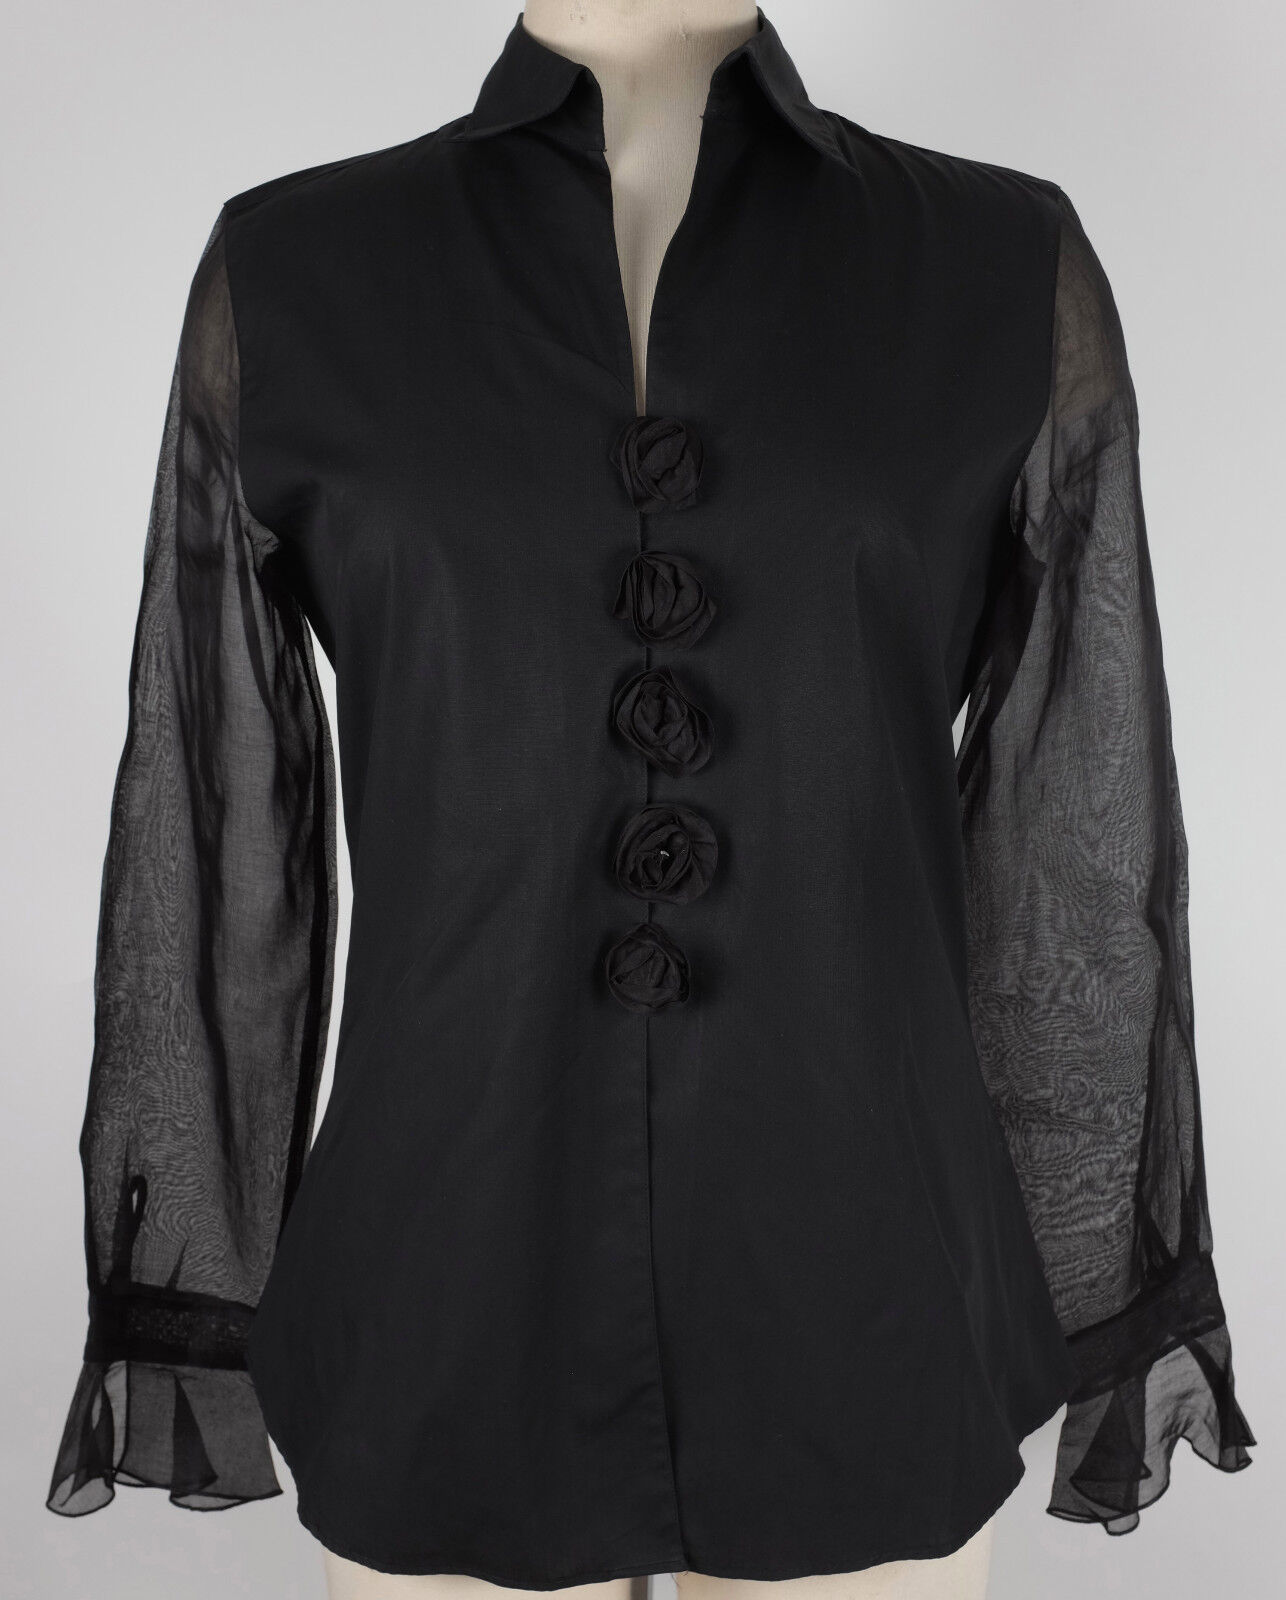 New Anne Fontaine sz 2 schwarz blouse long sleeve top